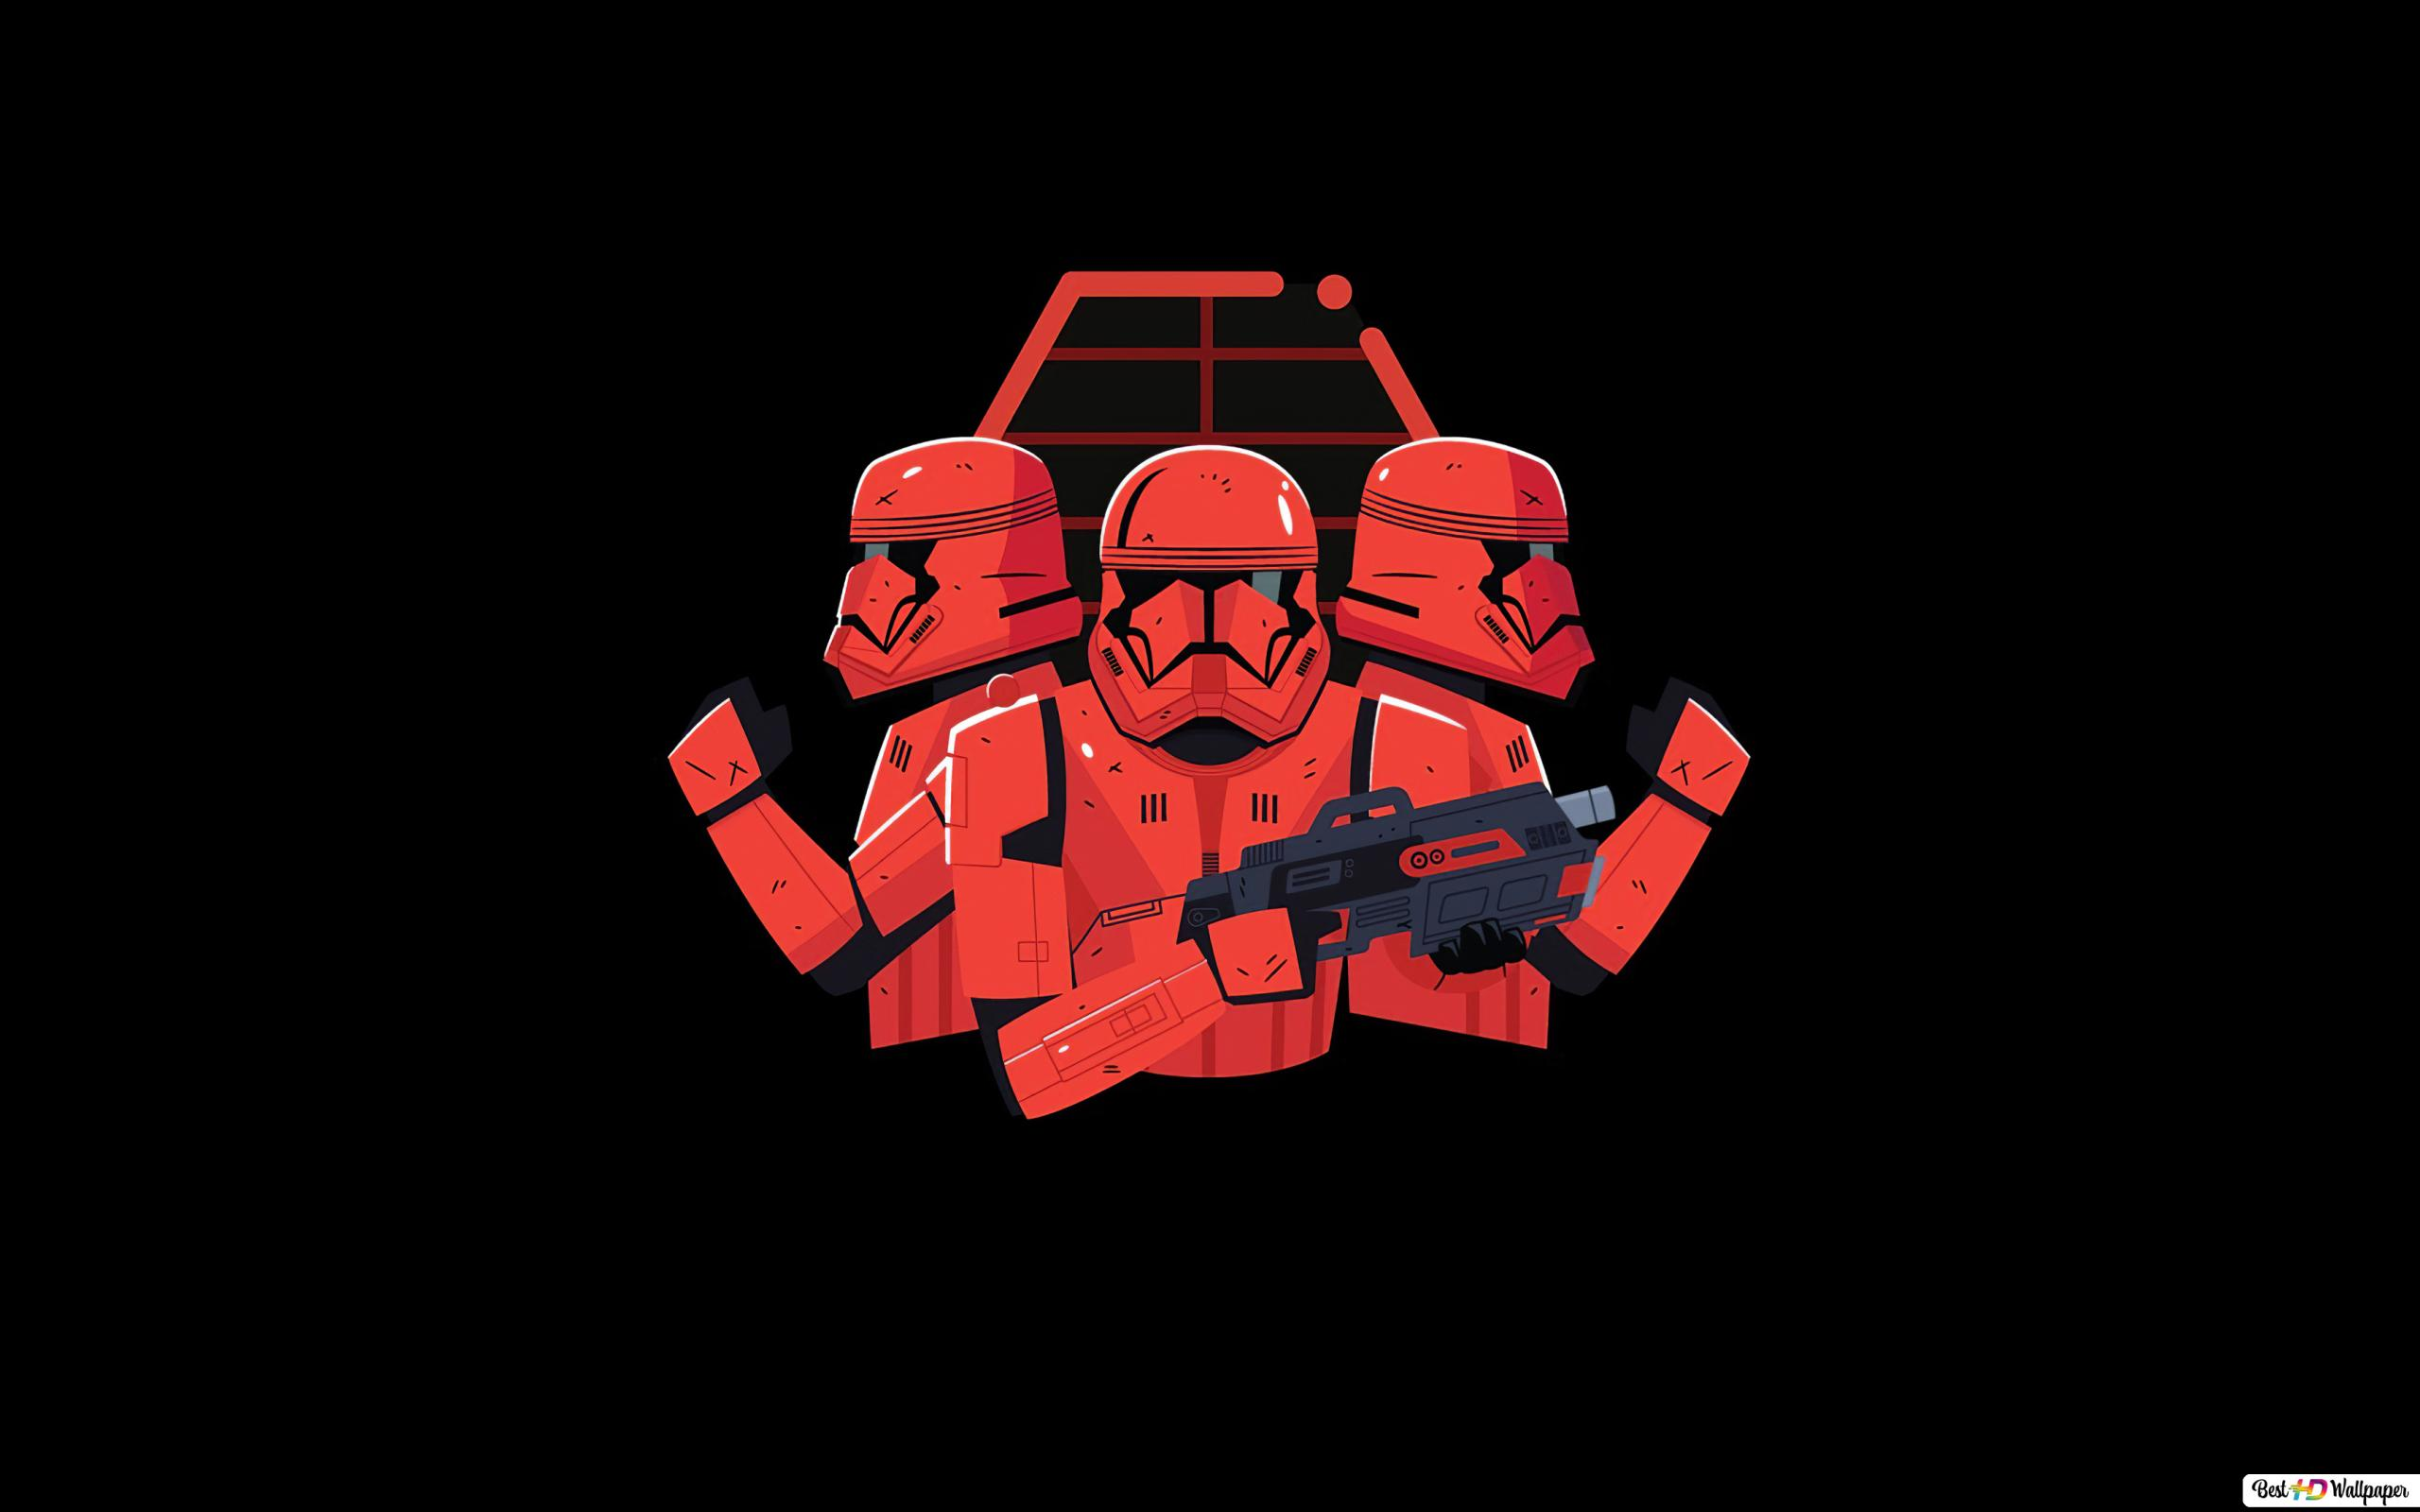 Sith Trooper Star Wars Hd Wallpaper Download